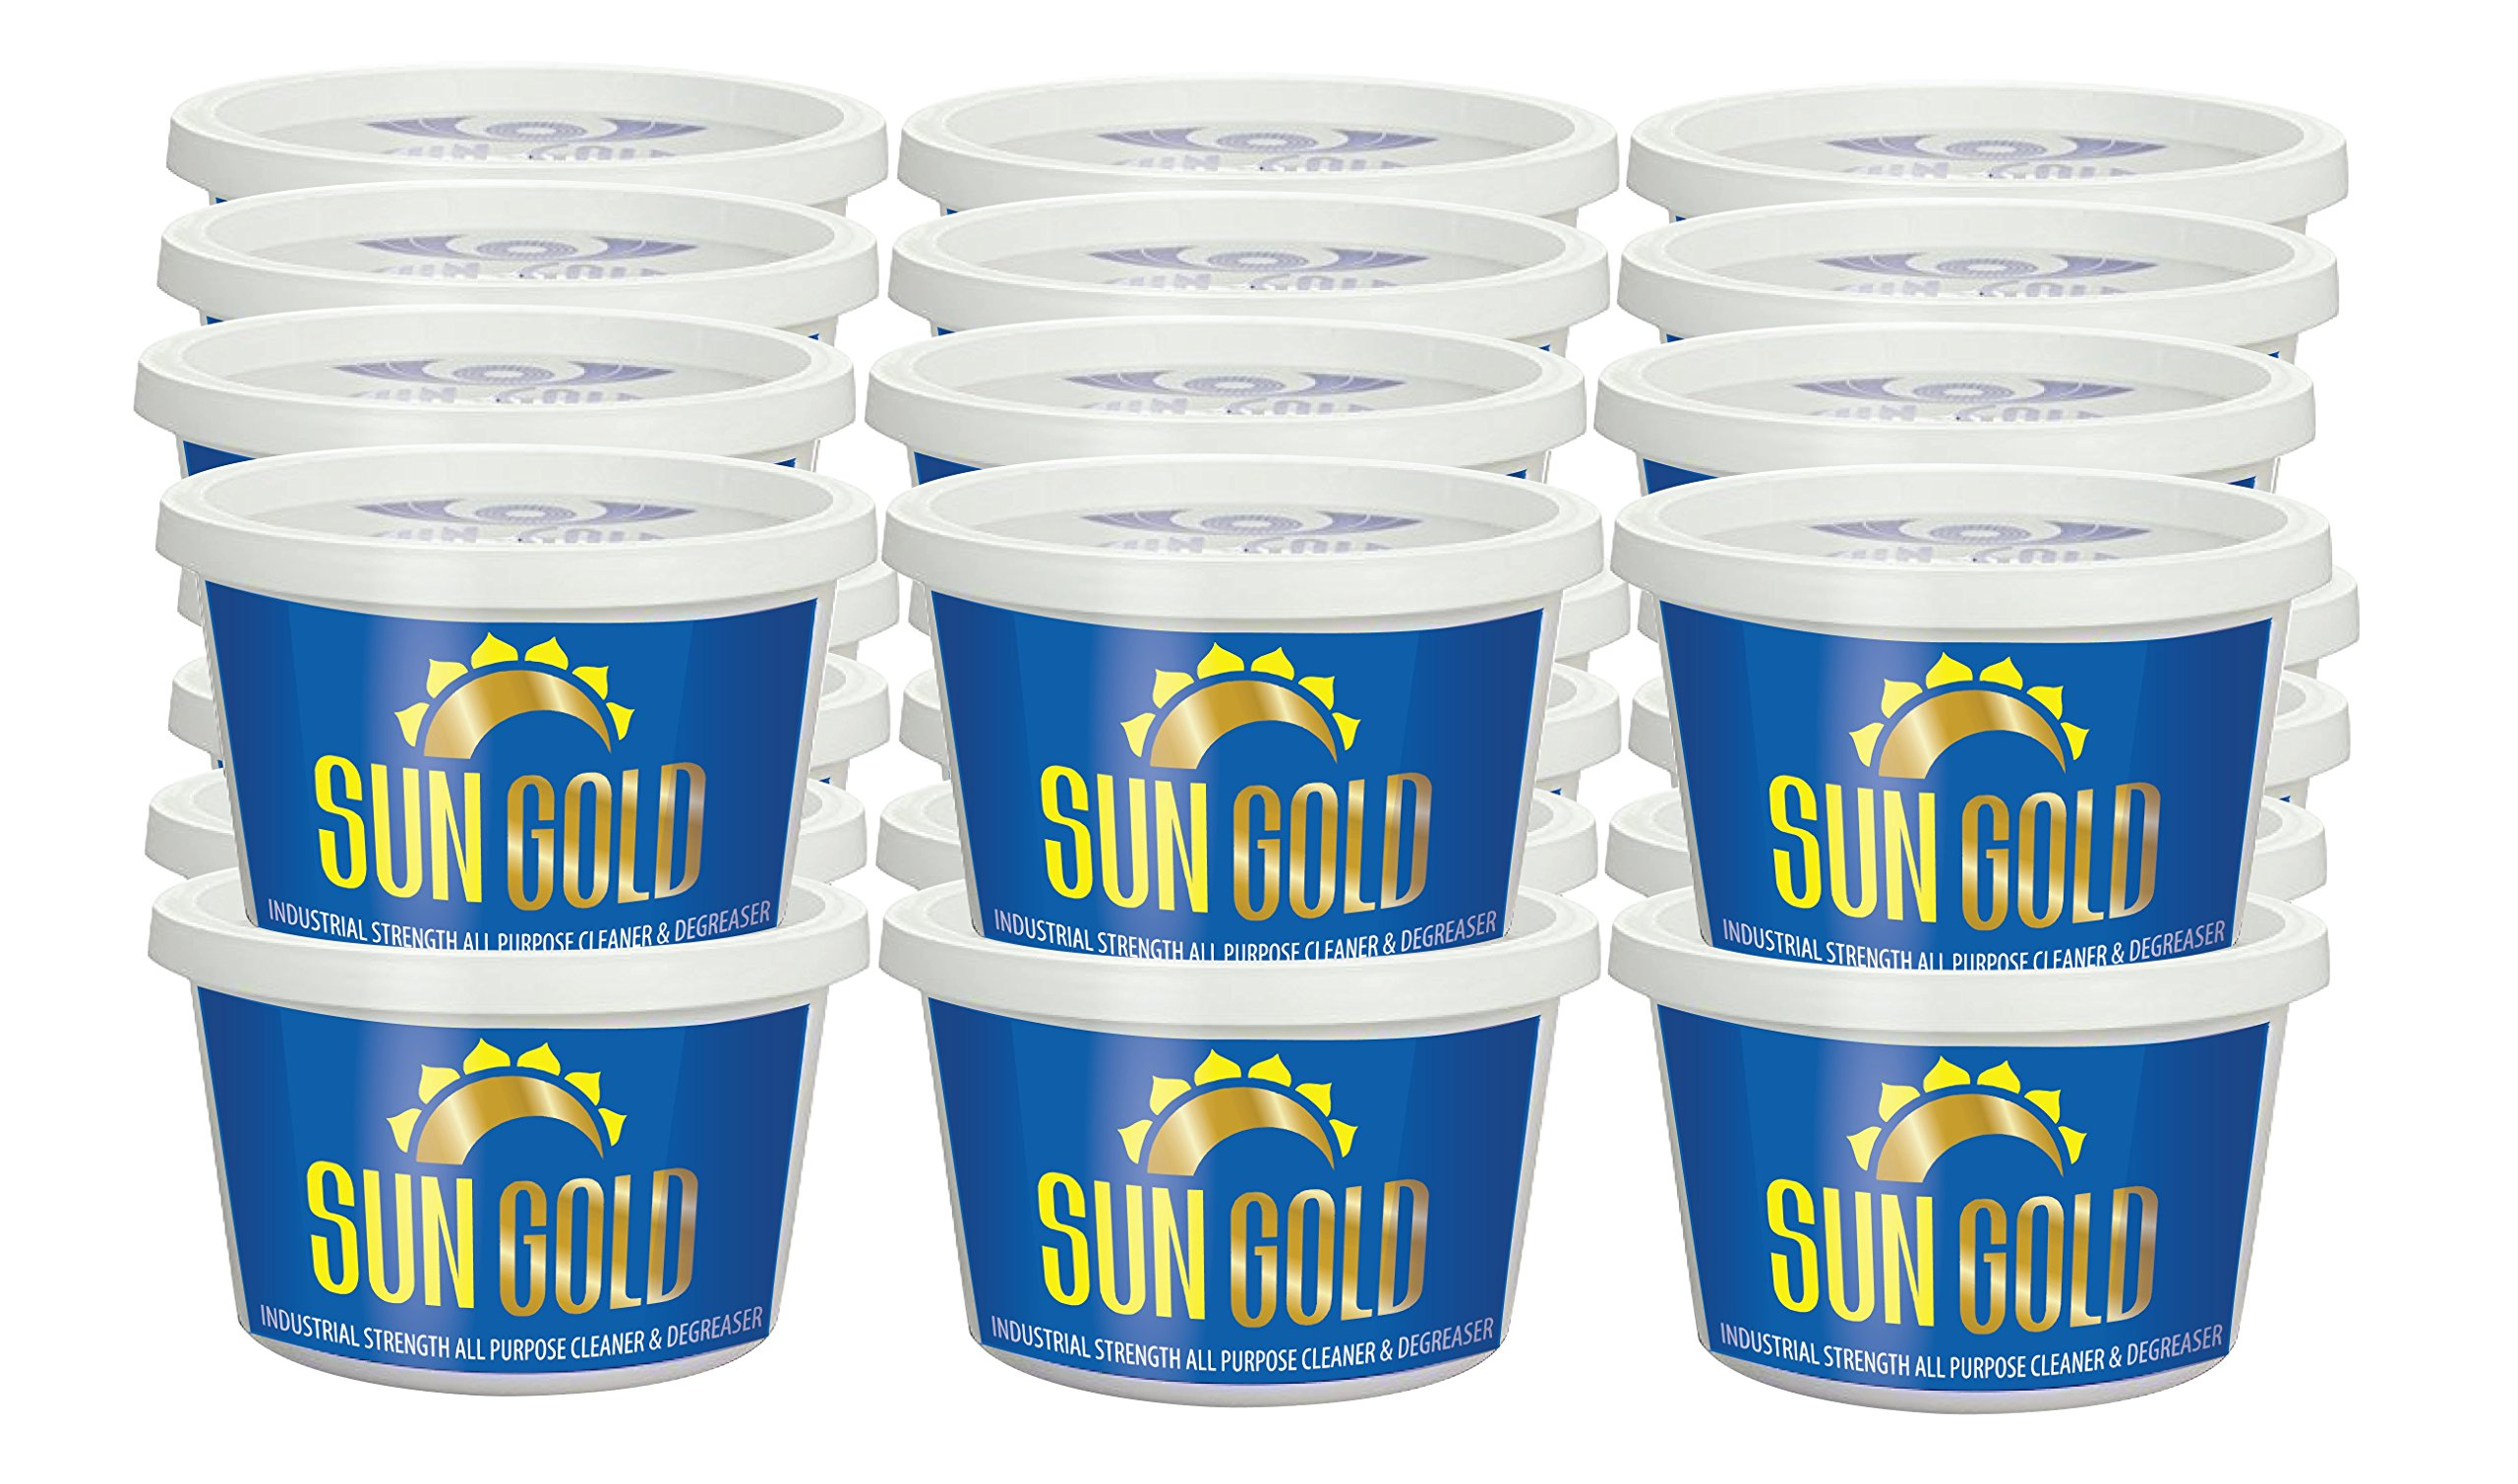 Sun Gold Manufacturing All Purpose Cleaner Super Concentrated 24 Pints [Container [A-1 Rated by NSF, USDA Certified] Safe - Non-Toxic - Biodegradable - Industrial Strength by Sun Gold Manufacturing